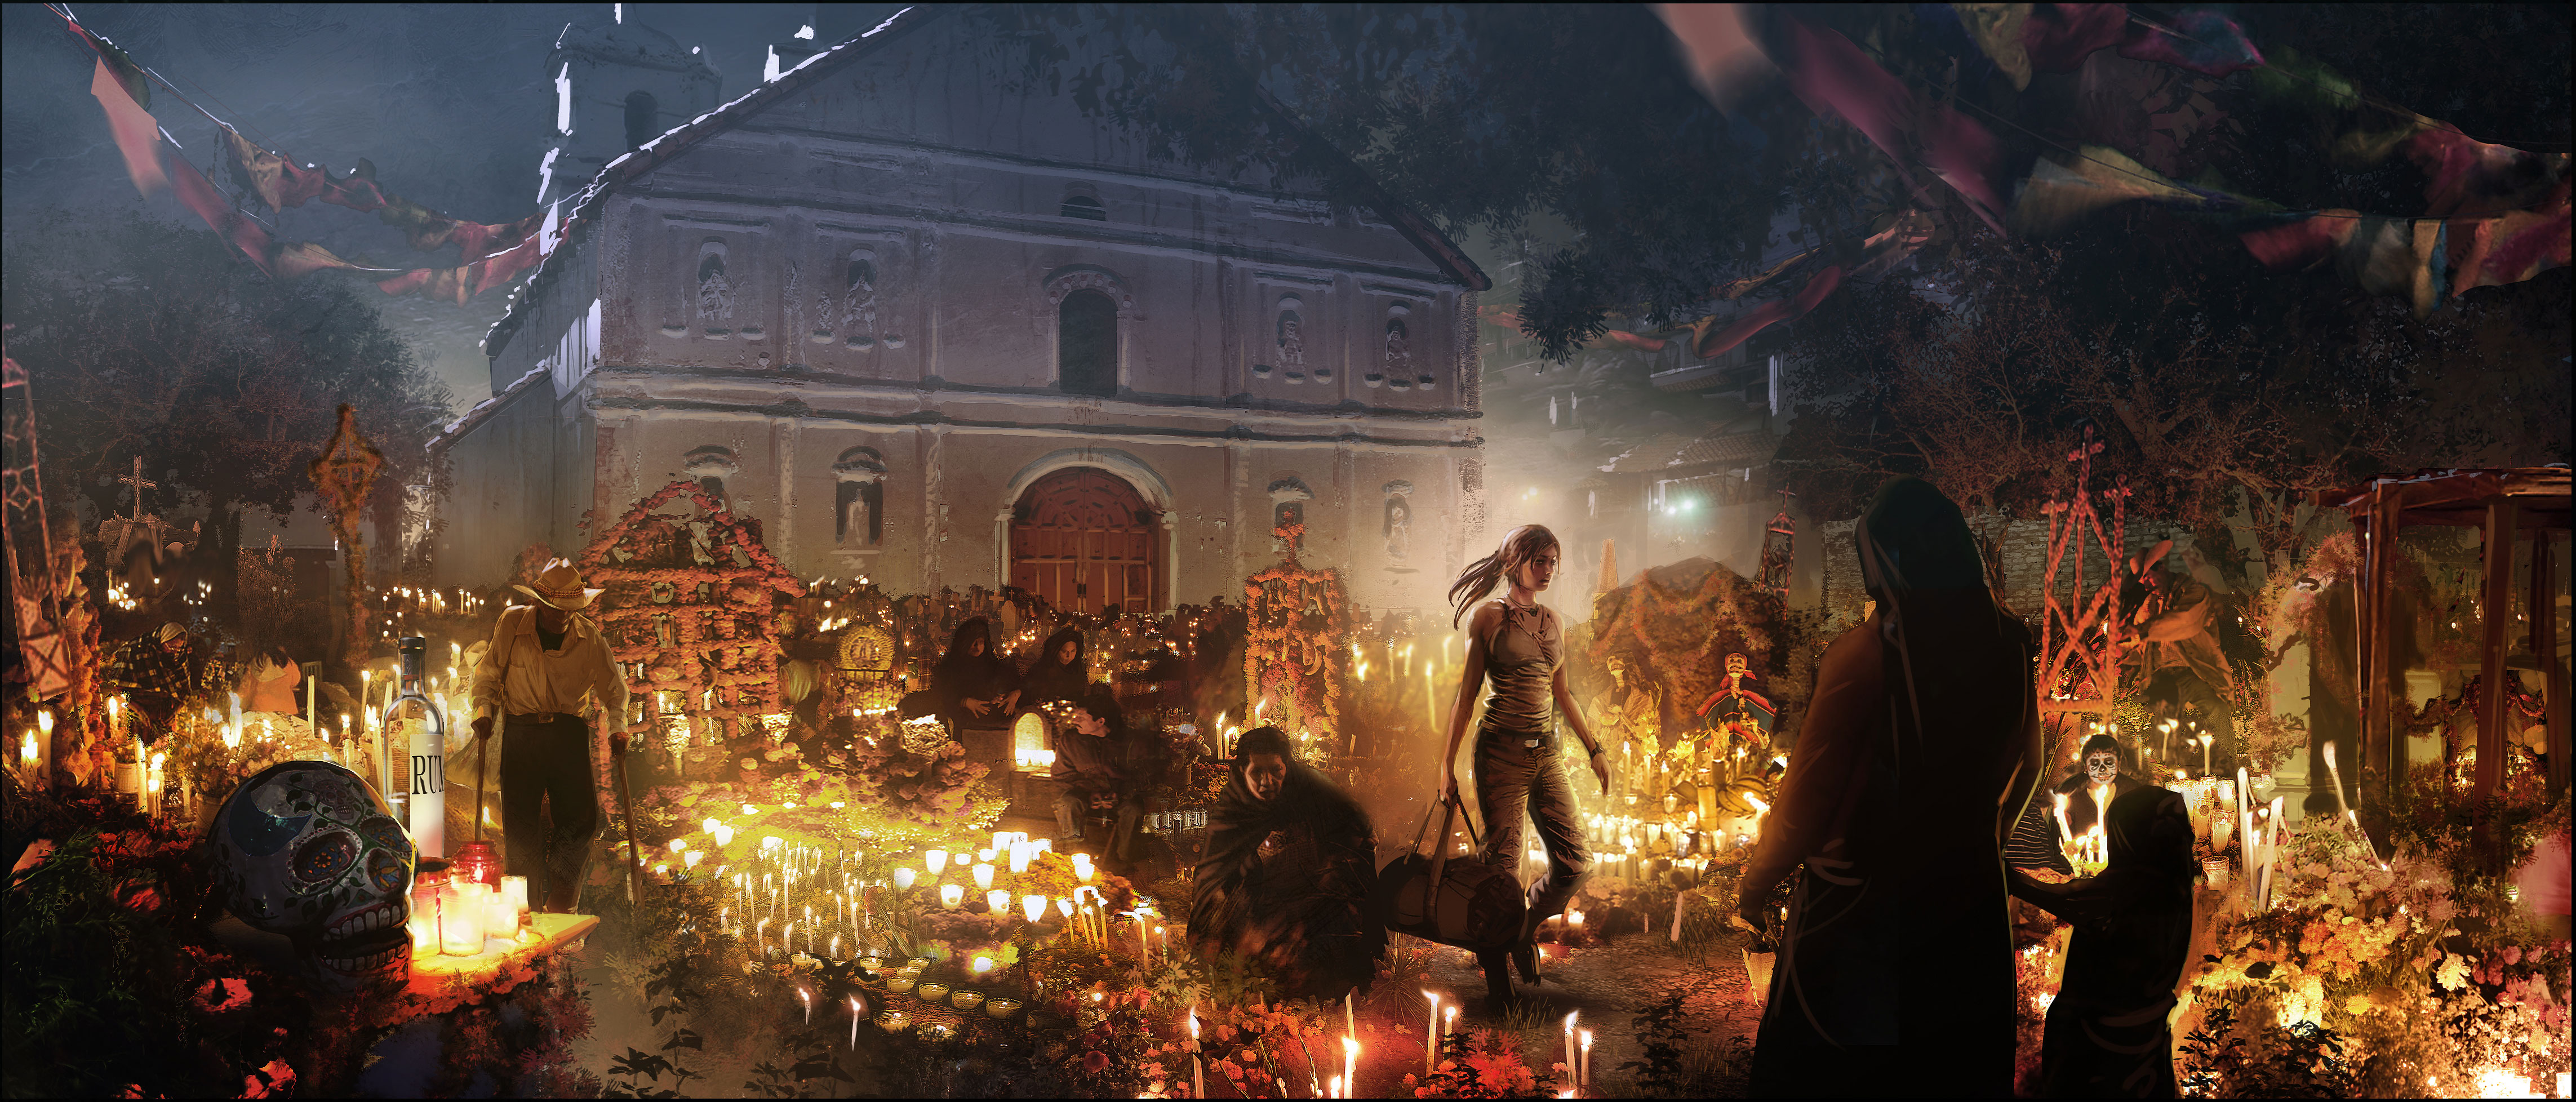 Shadow Of The Tomb Raider Concept Art: Shadow Of The Tomb Raider Pre-orders Get Early Access